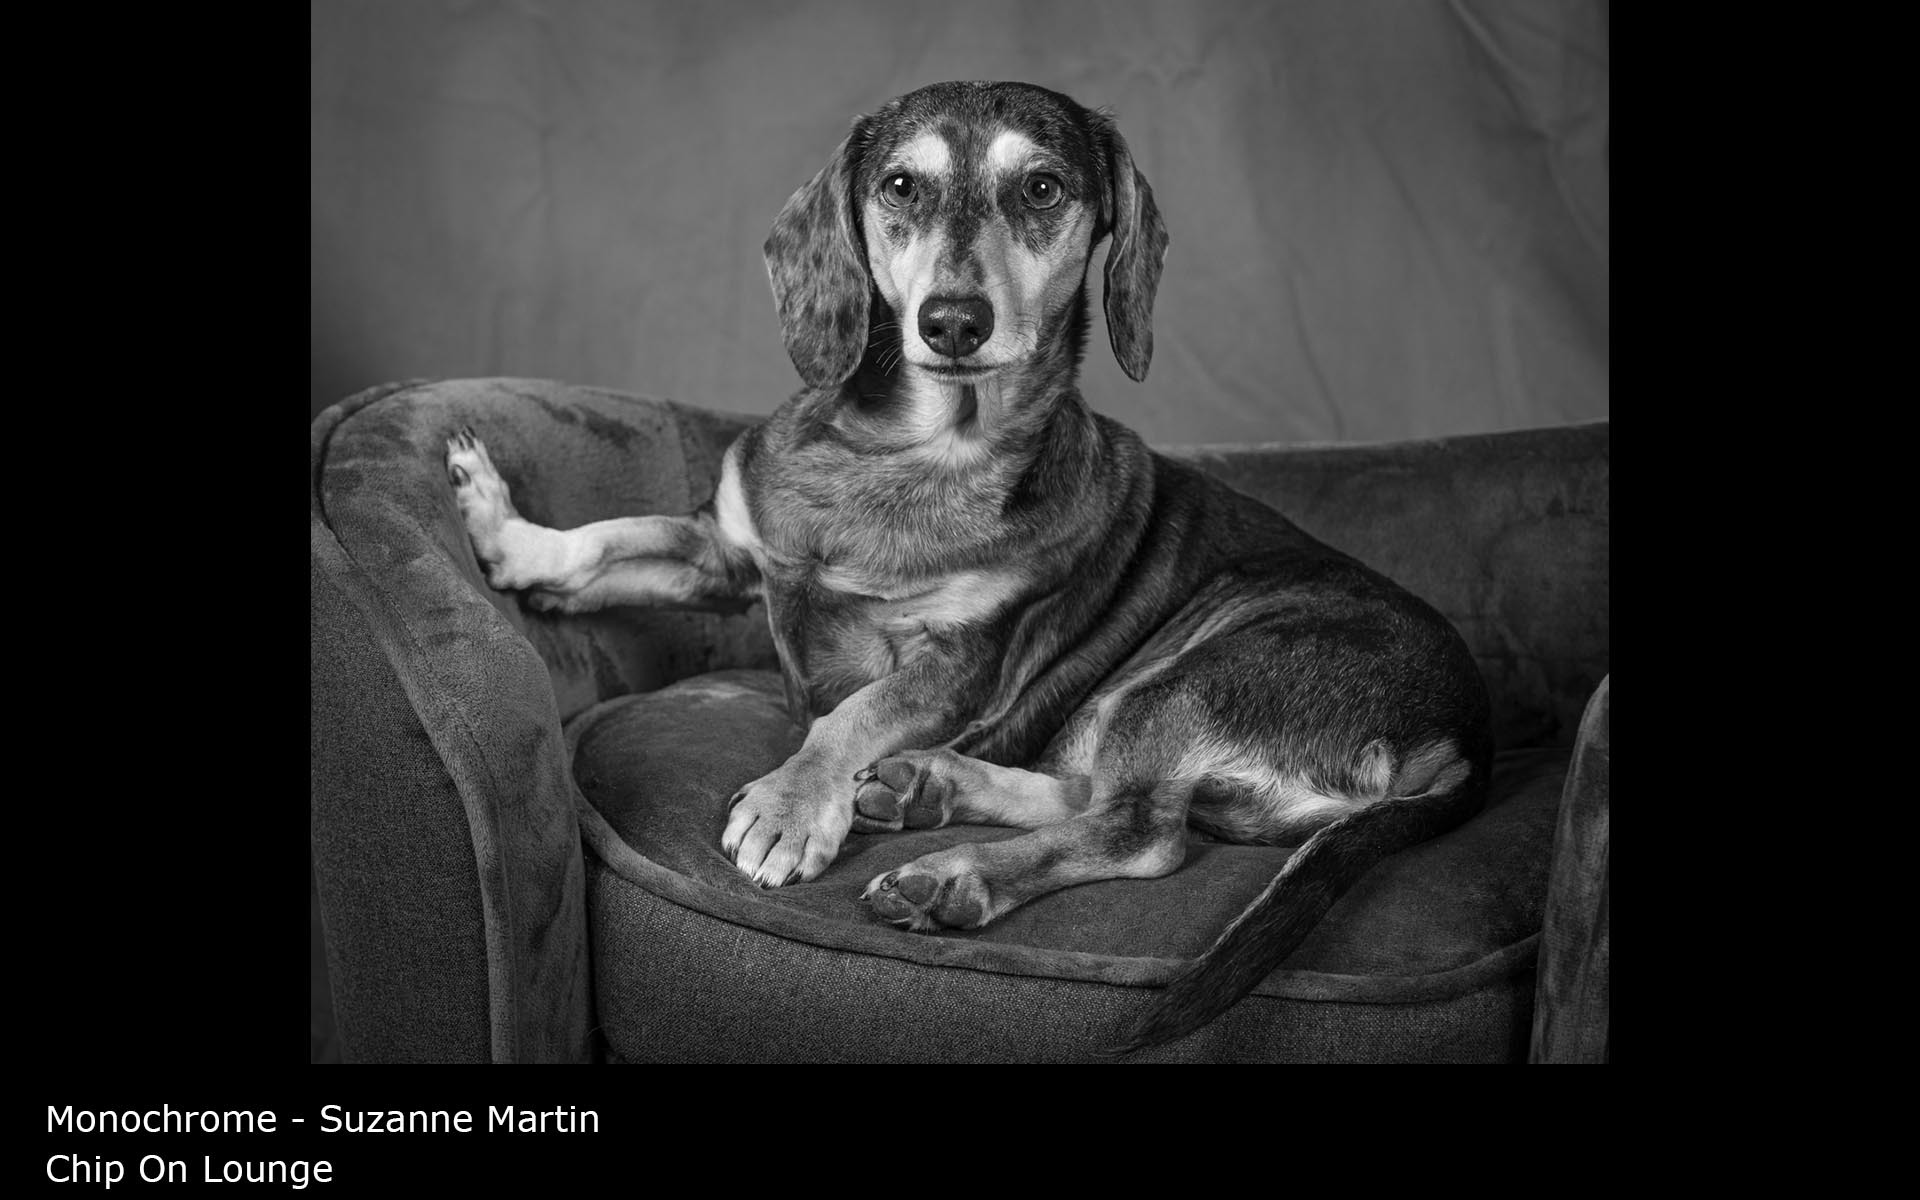 Chip On Lounge - Suzanne Martin